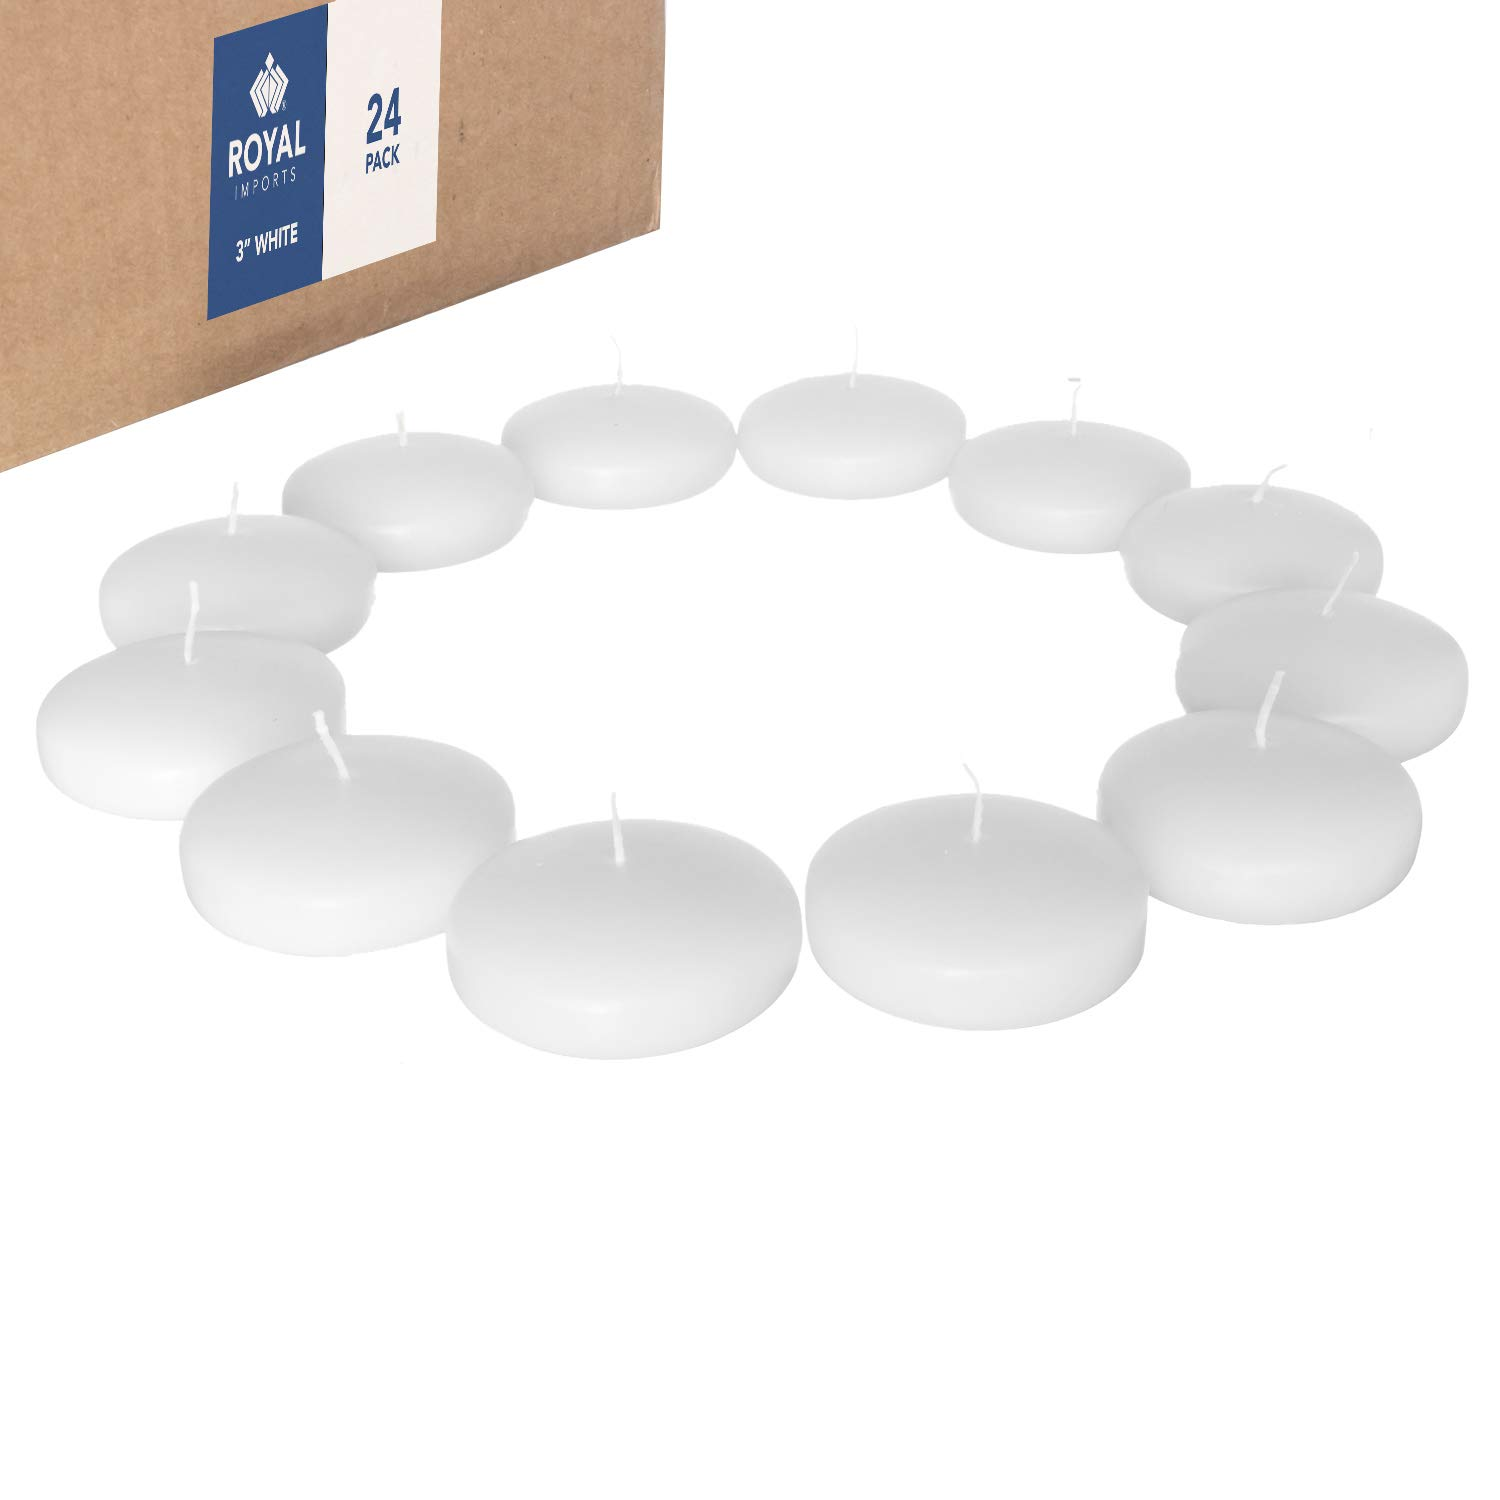 Royal Imports Floating Candles Unscented Discs for Wedding, Pool Party, Holiday & Home Decor, 3 Inch, White Wax, Bulk Set of 24 by Royal Imports